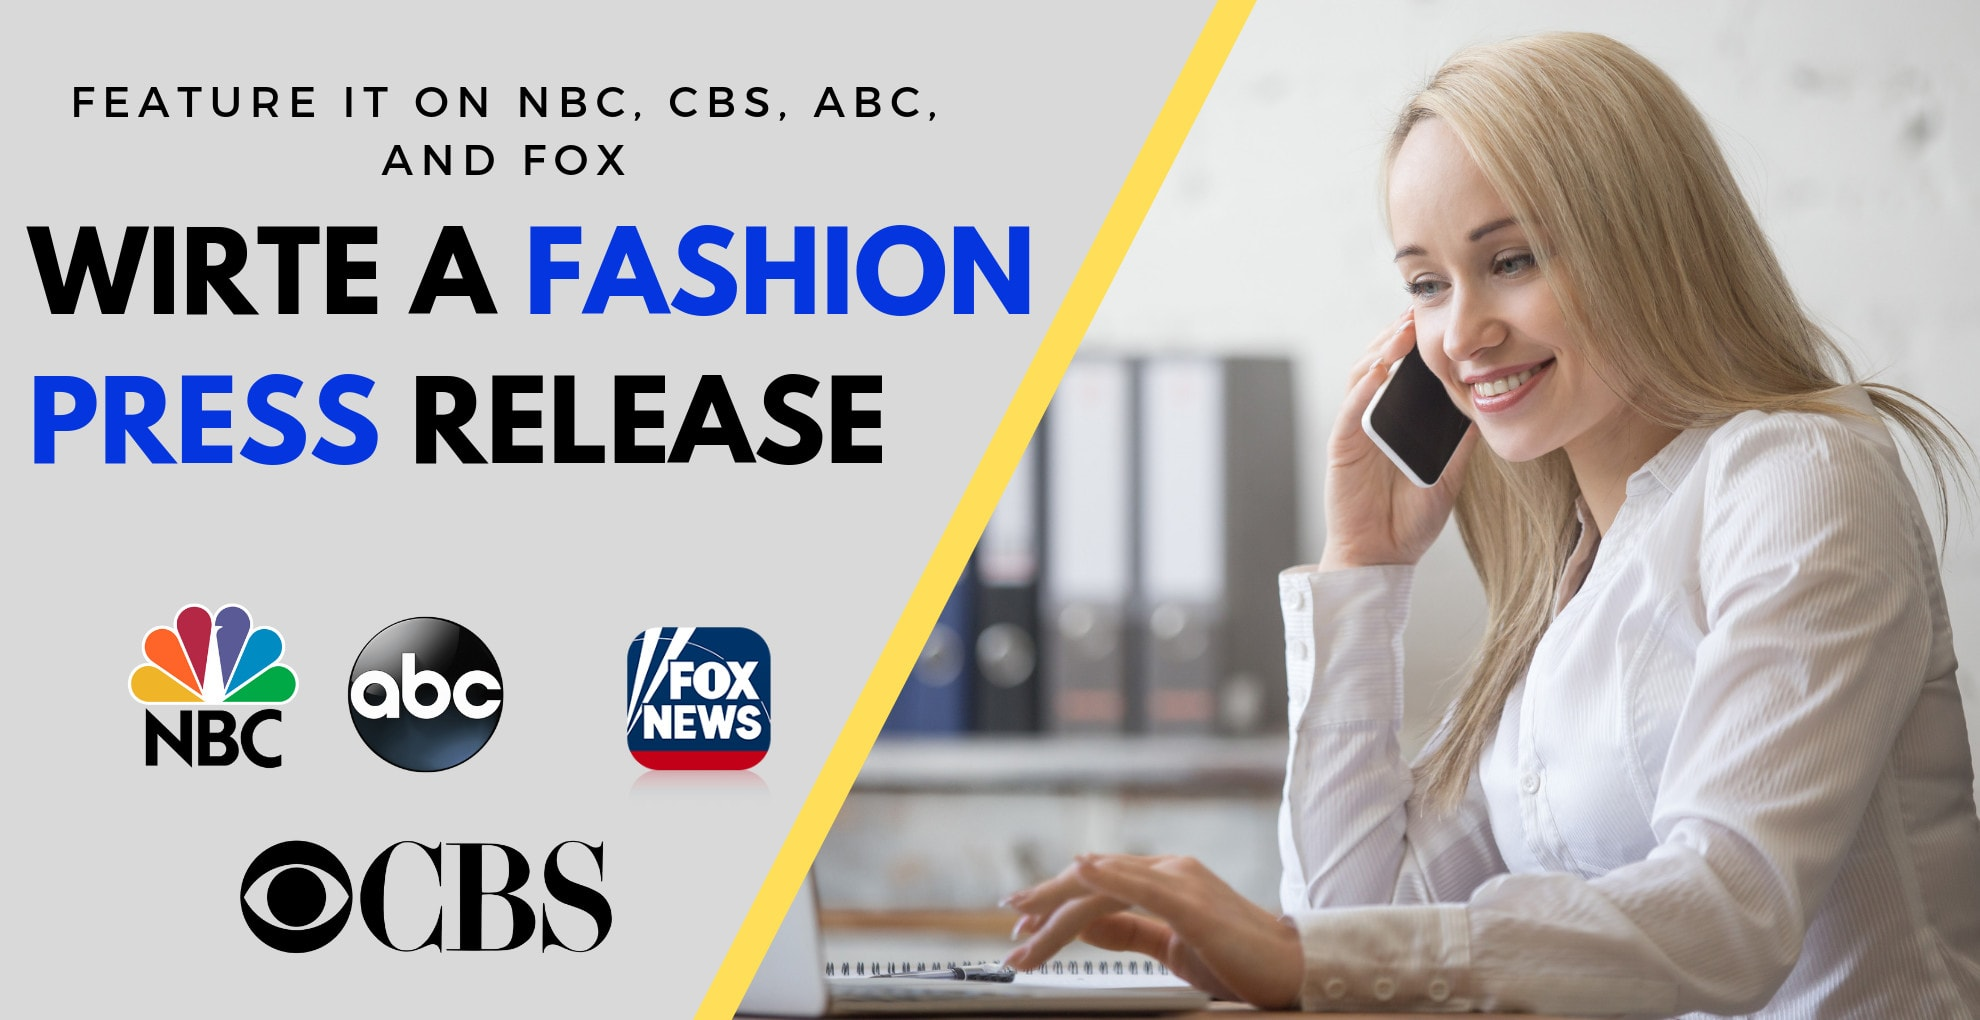 I will write and distribute your fashion press release on fox CBS NBC ETC